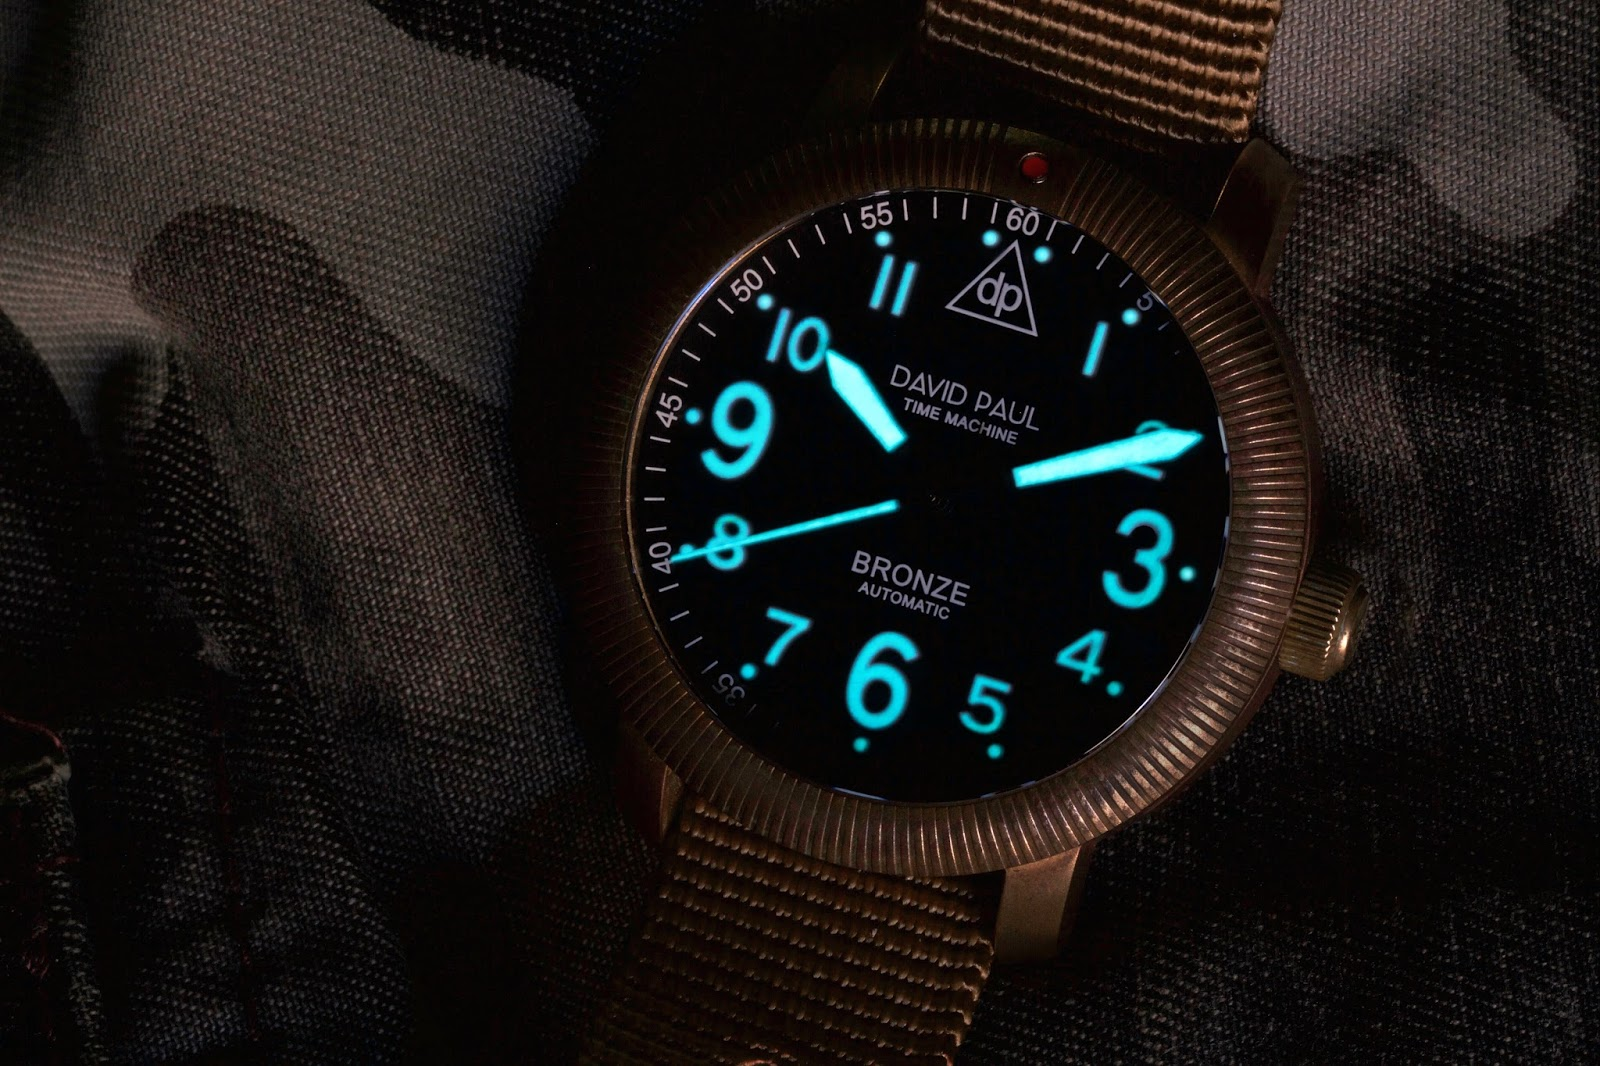 David Paul DP-1 Bronze Time Machine lume